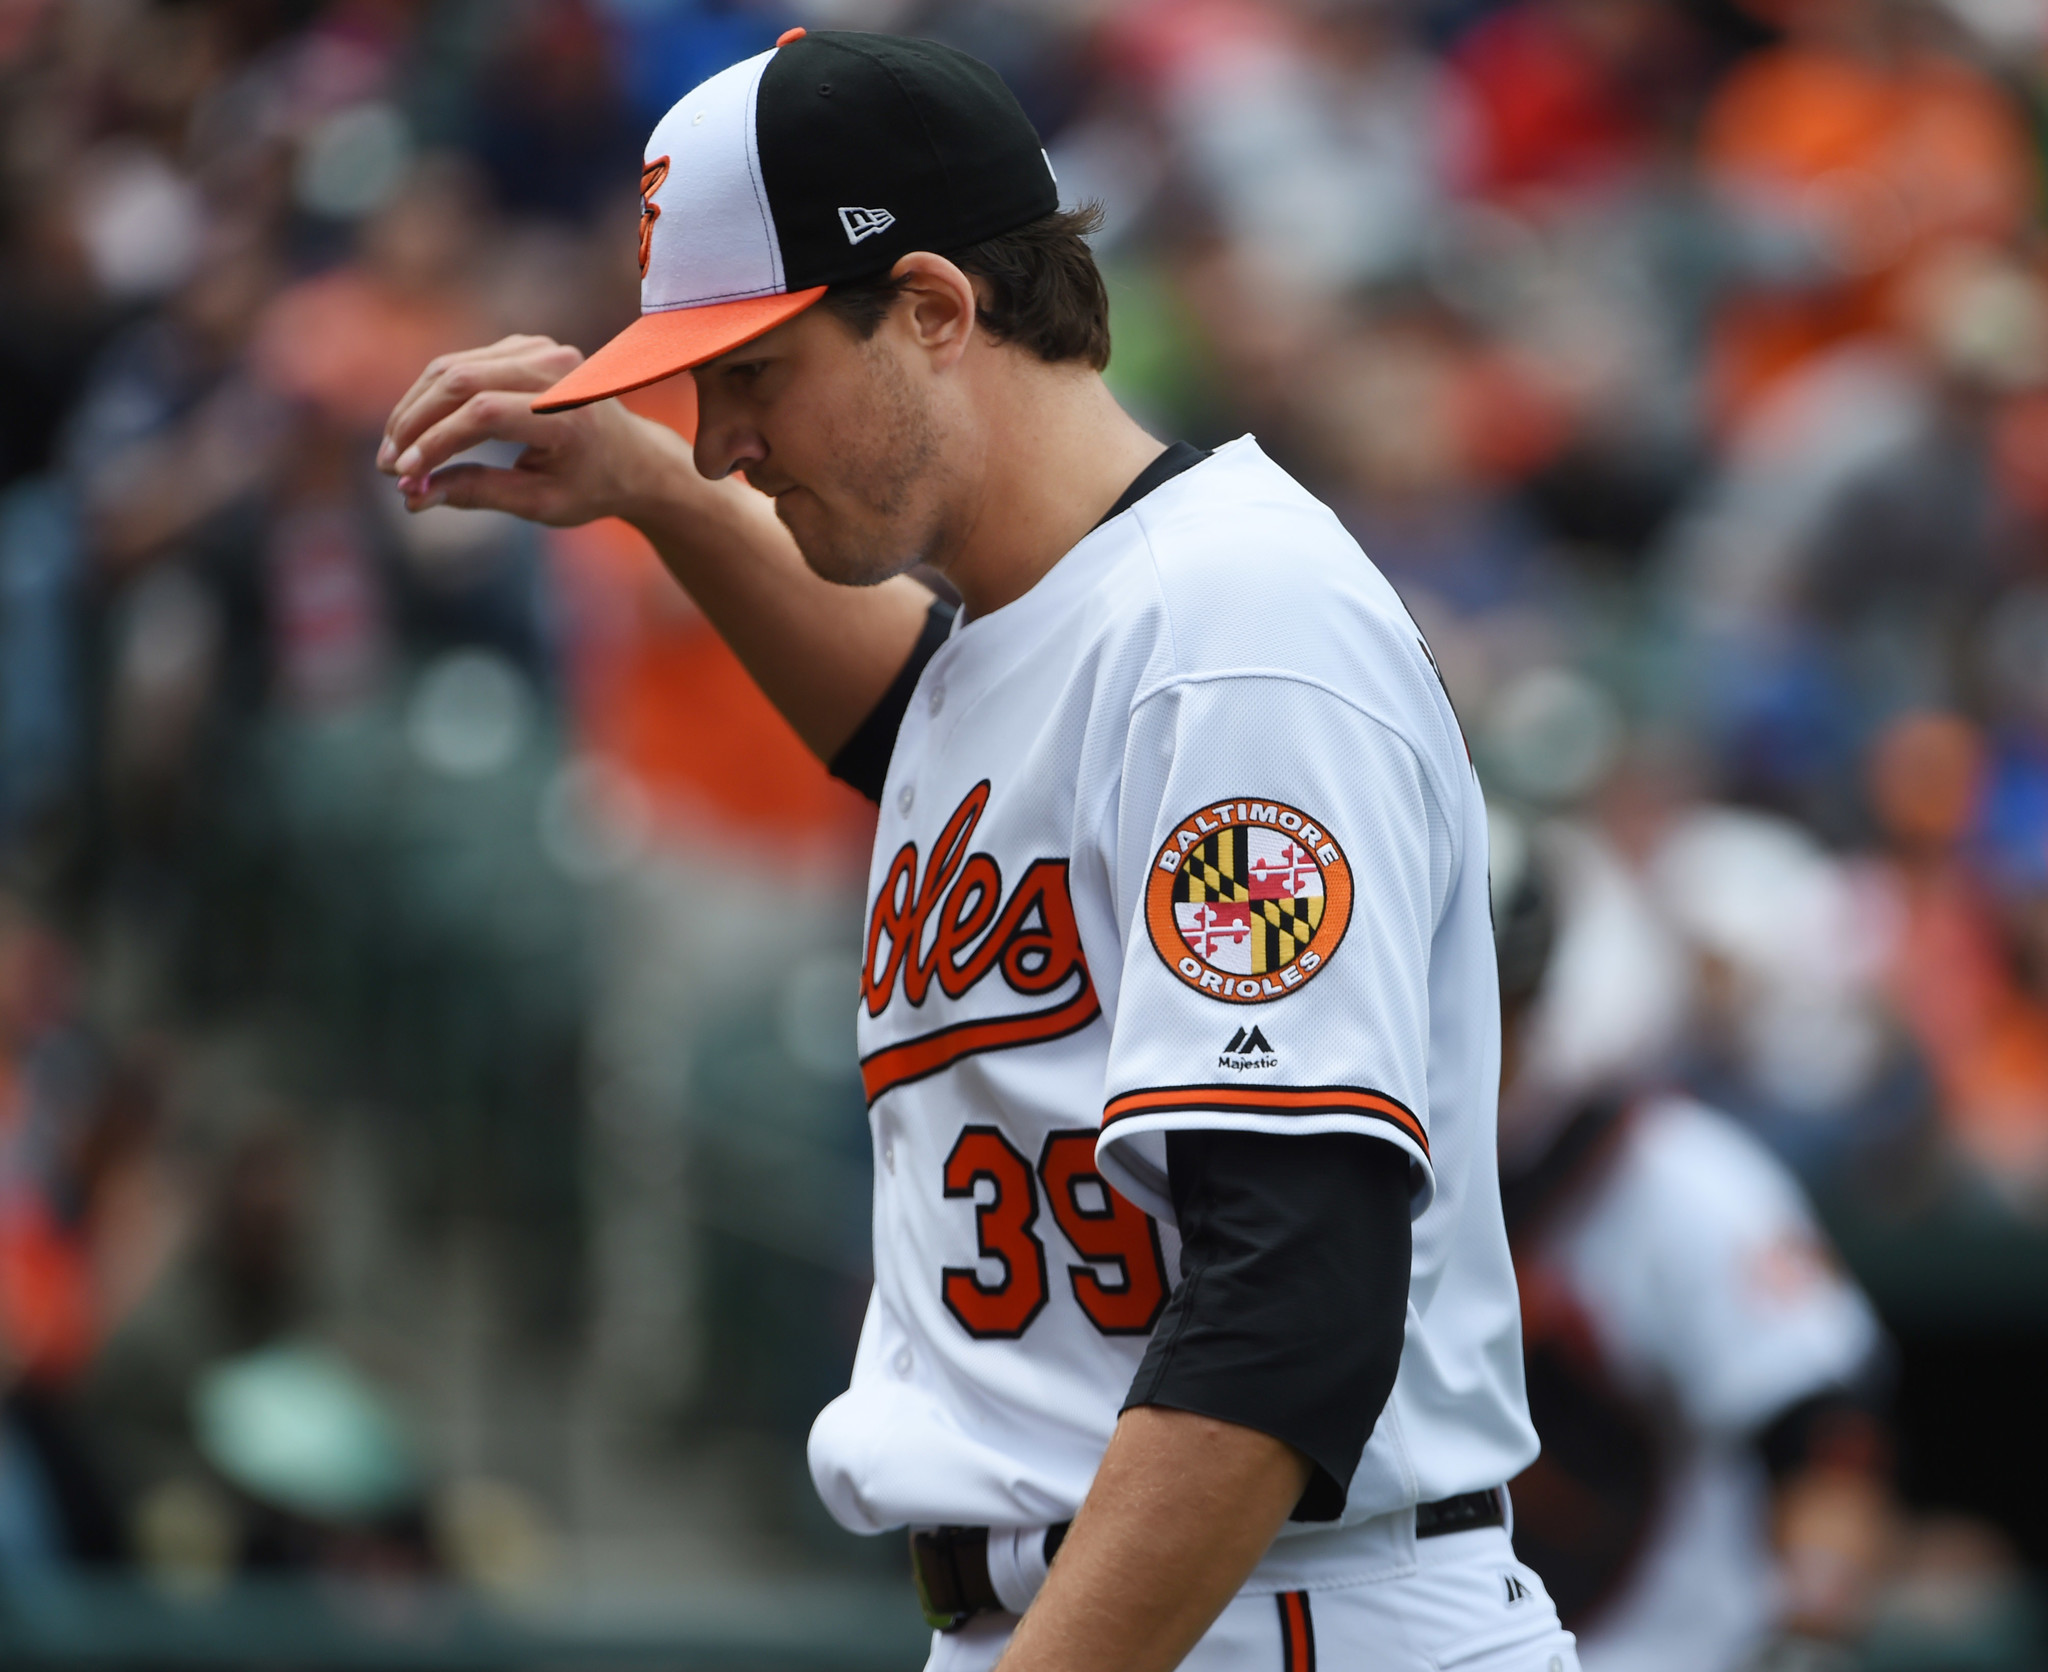 Bal-after-forgettable-start-orioles-kevin-gausman-owns-up-to-his-april-not-very-good-20170423